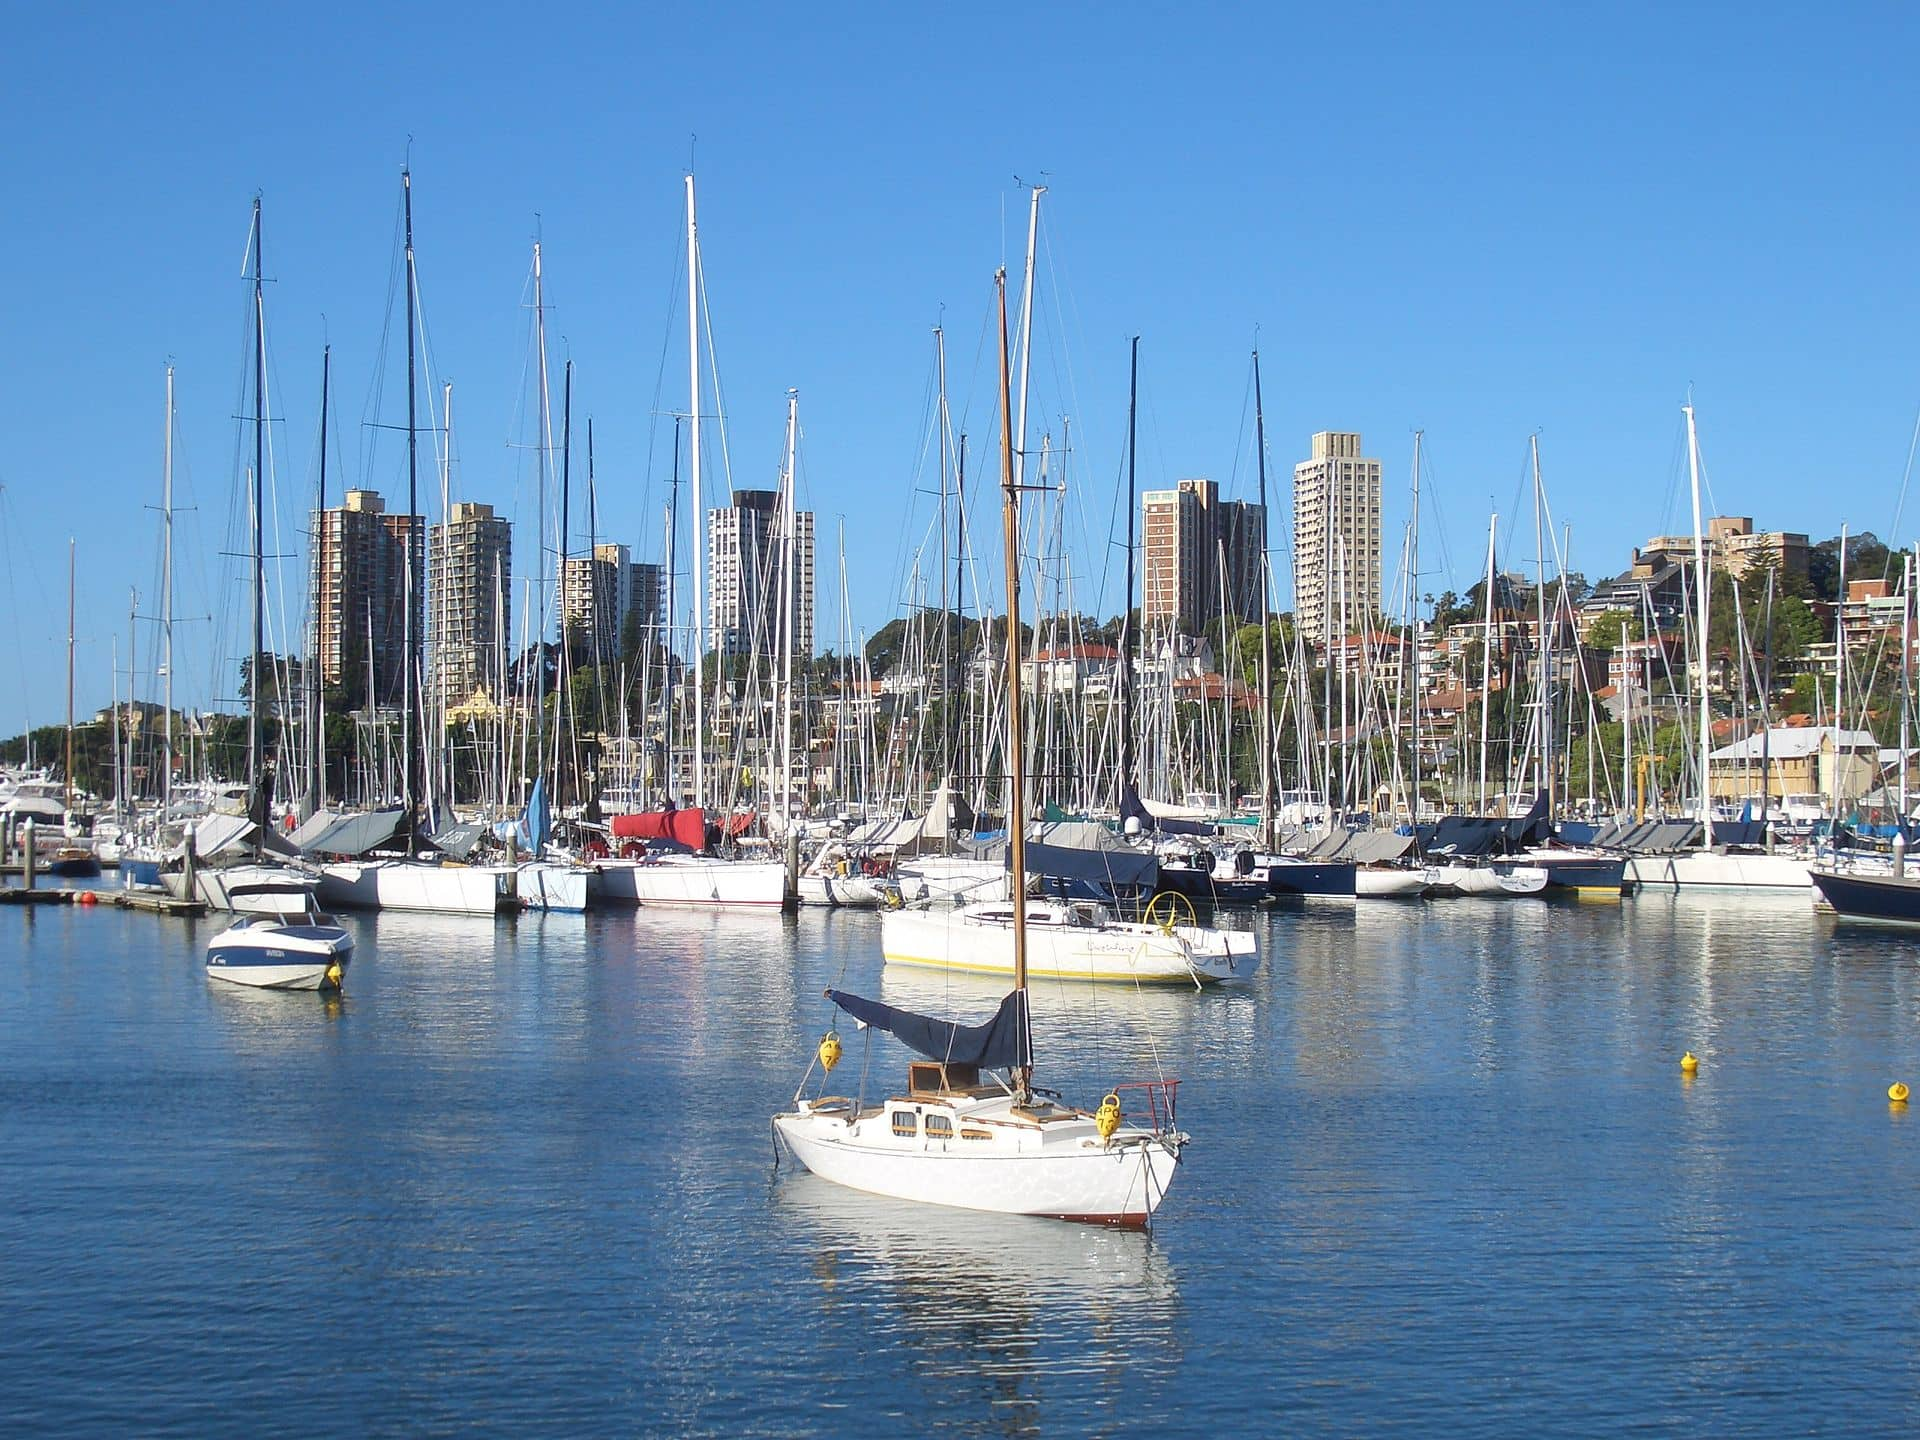 Rushcutters Bay, NSW